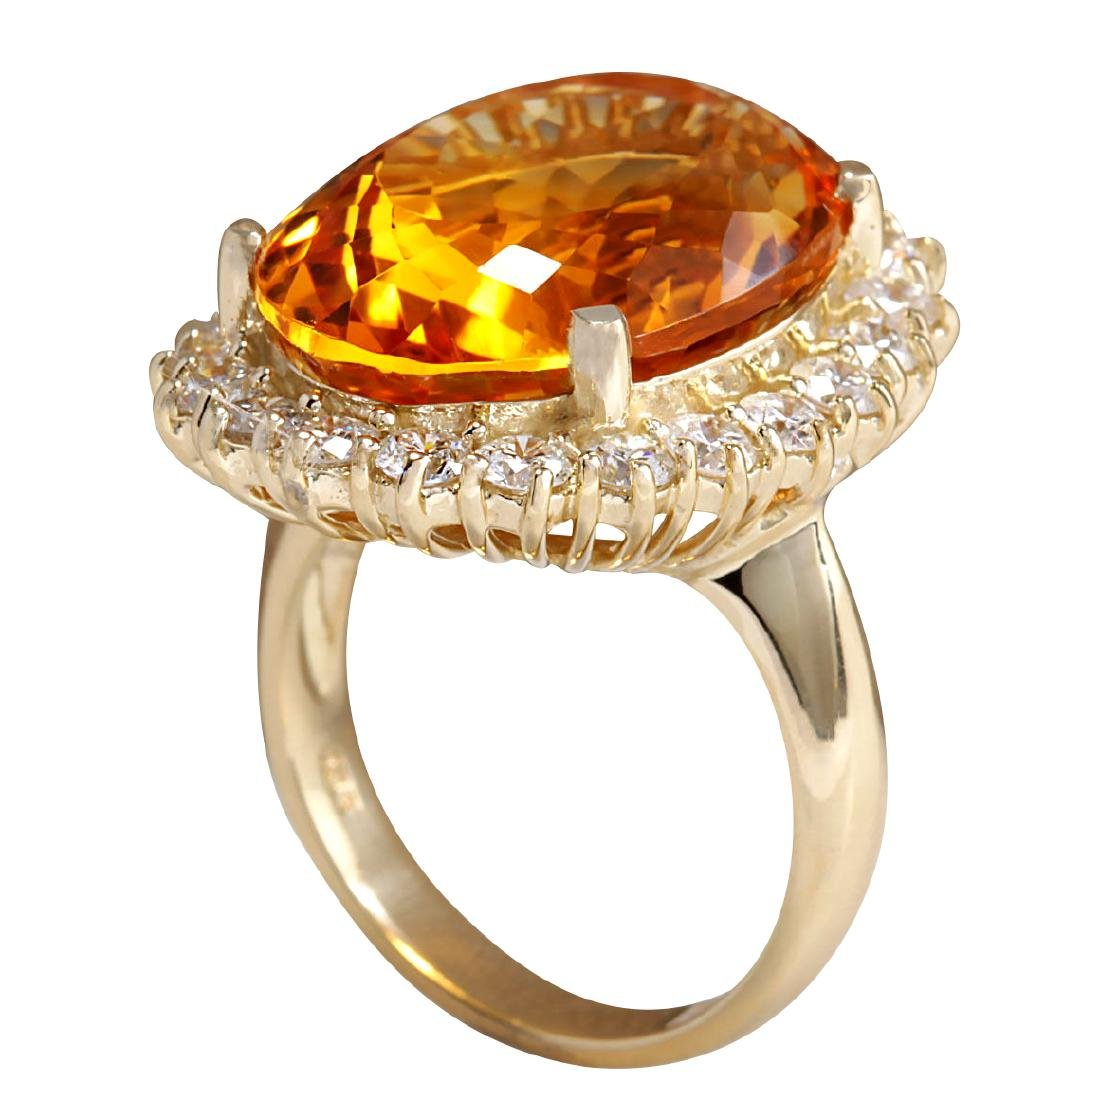 17.91CTW Natural Citrine And Diamond Ring In 18K Solid - 3